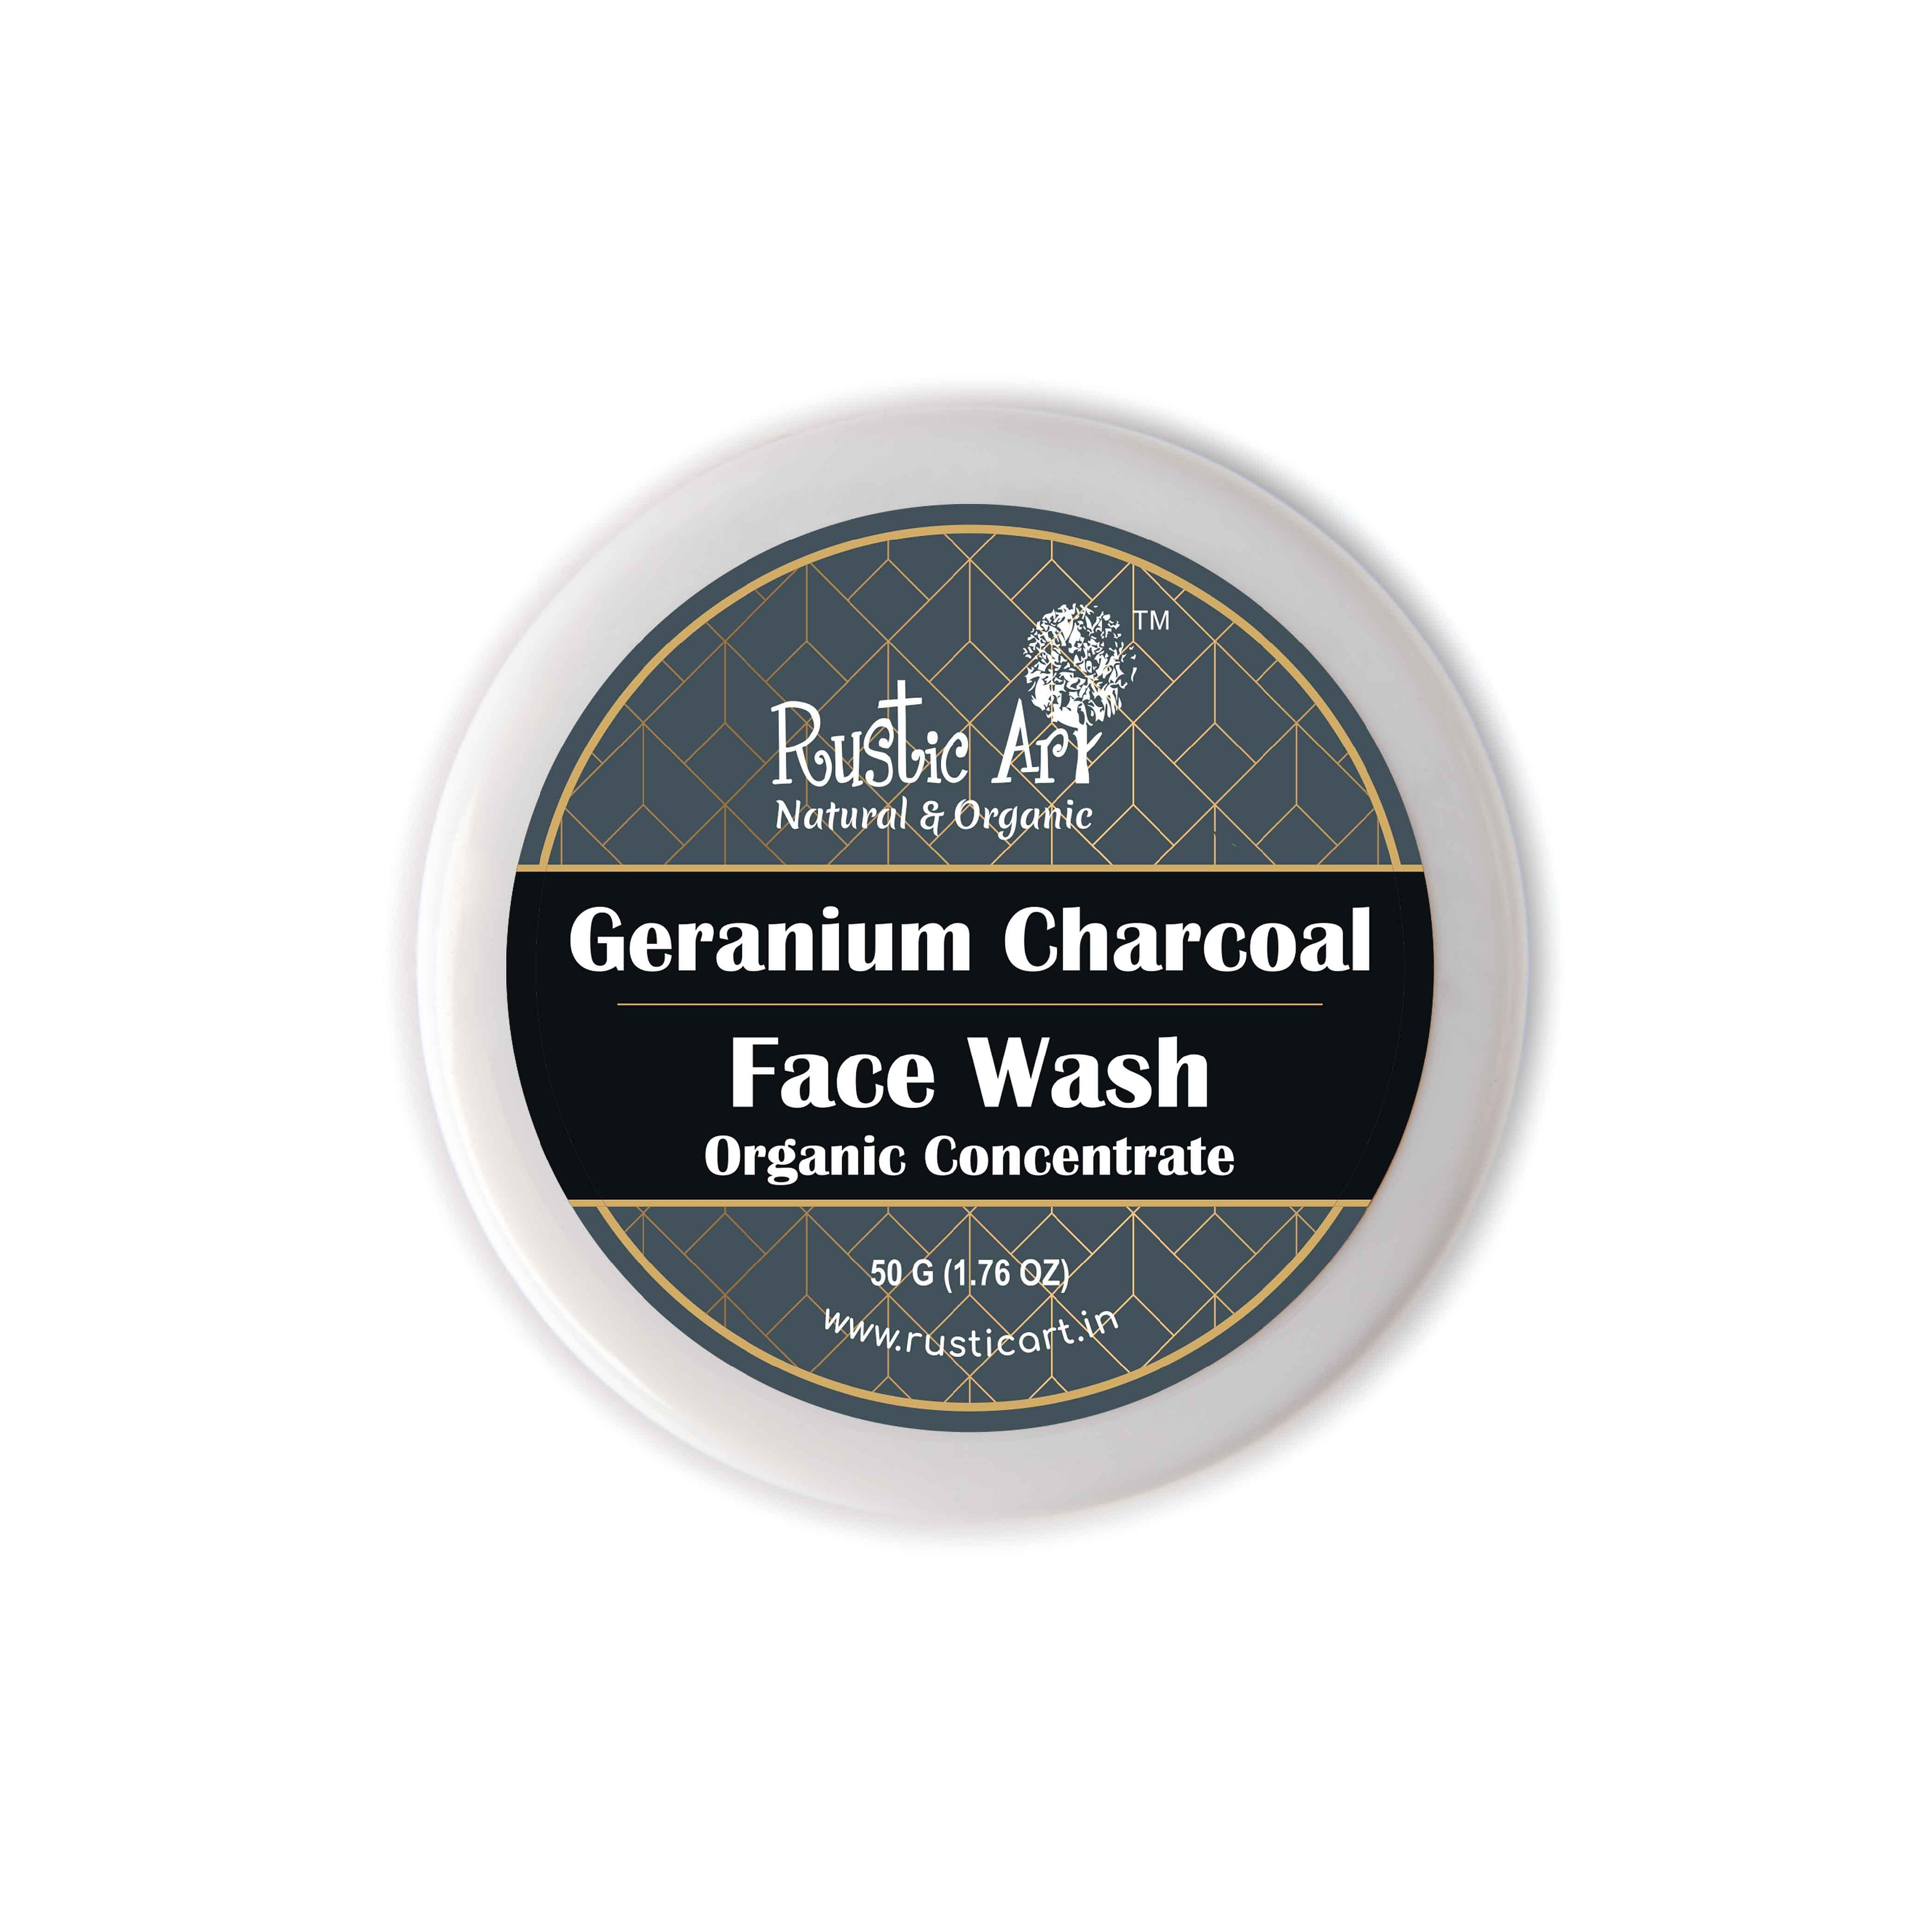 Rustic Art Organic Geranium Charcoal Face Wash Concentrate - 50g